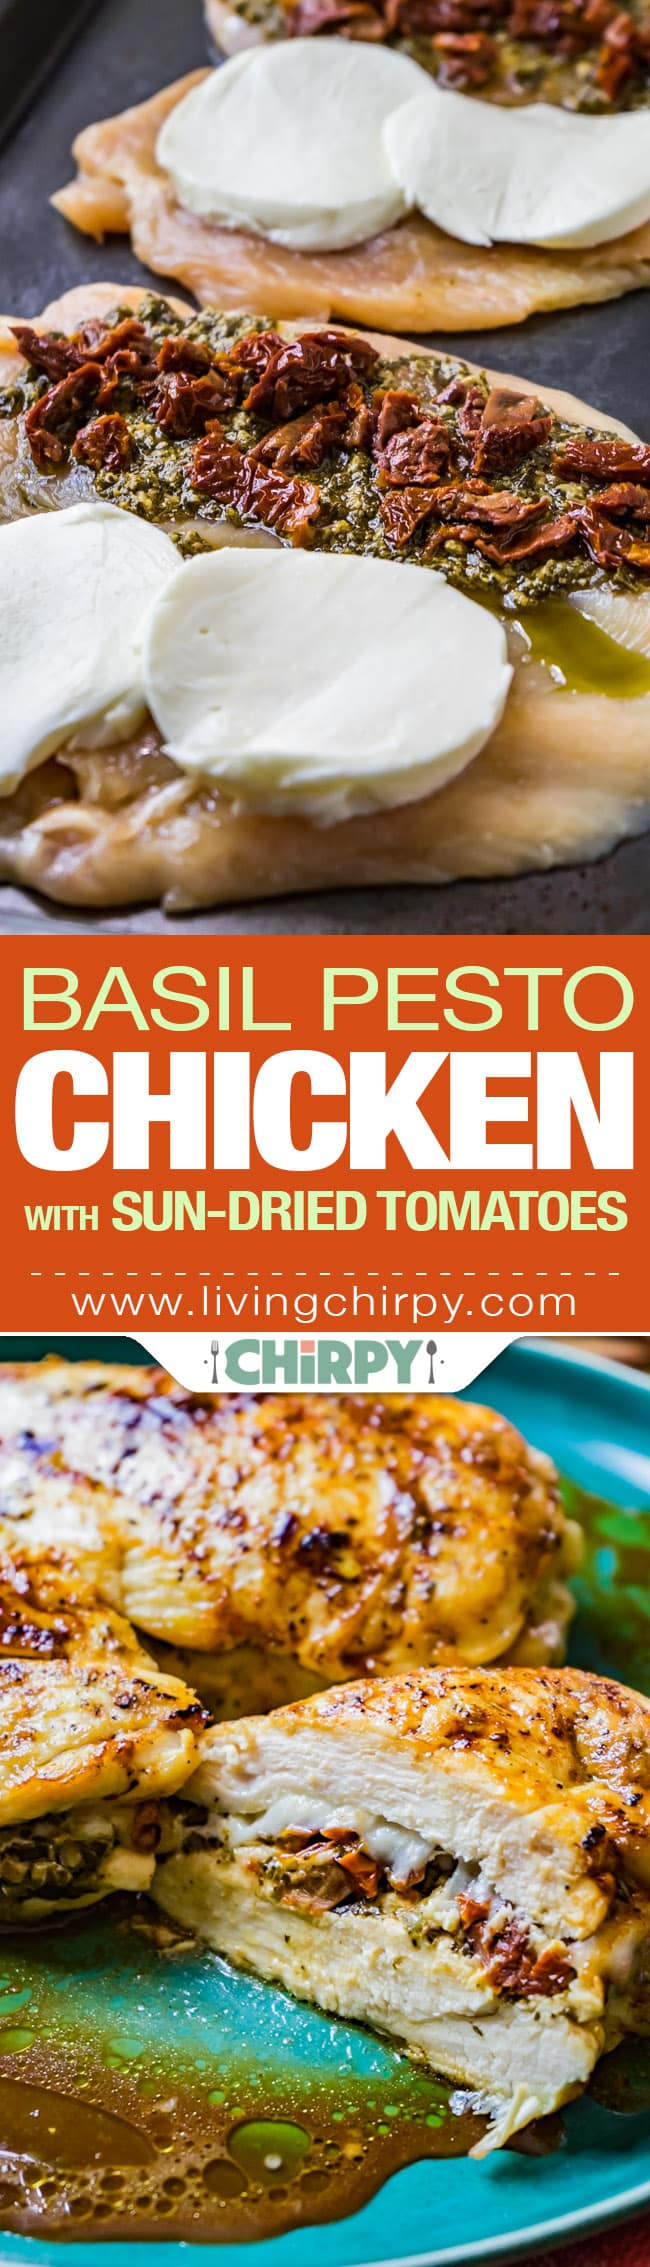 Basil Pesto Chicken With Sundried Tomatoes